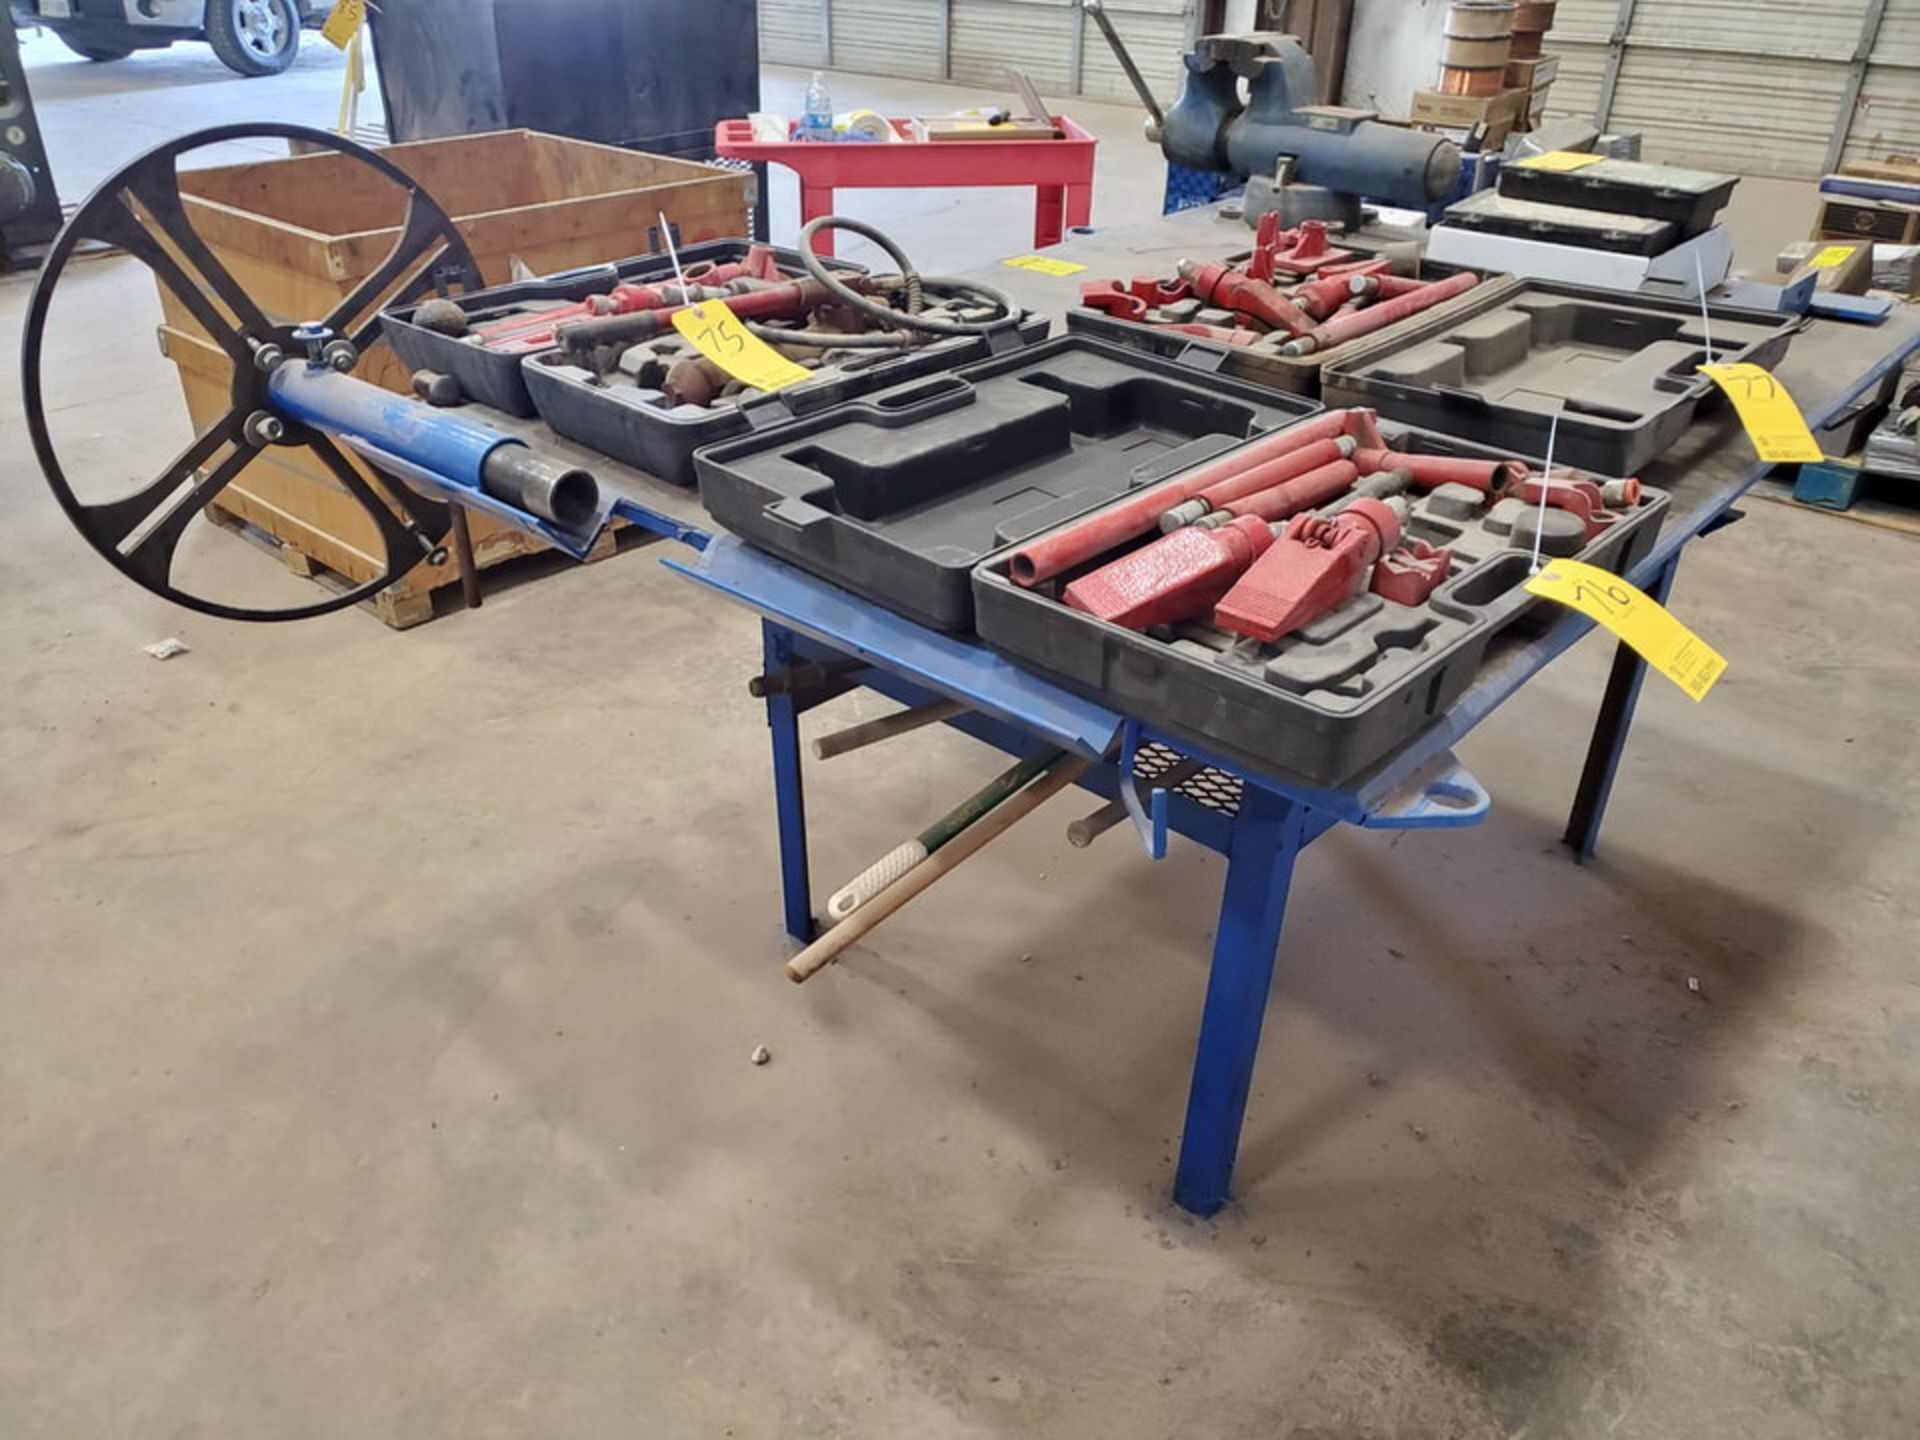 "Stl Welding Table W/ 6"" Vise 48"" x 70"" x 35""H (Material Excluded) - Image 4 of 8"